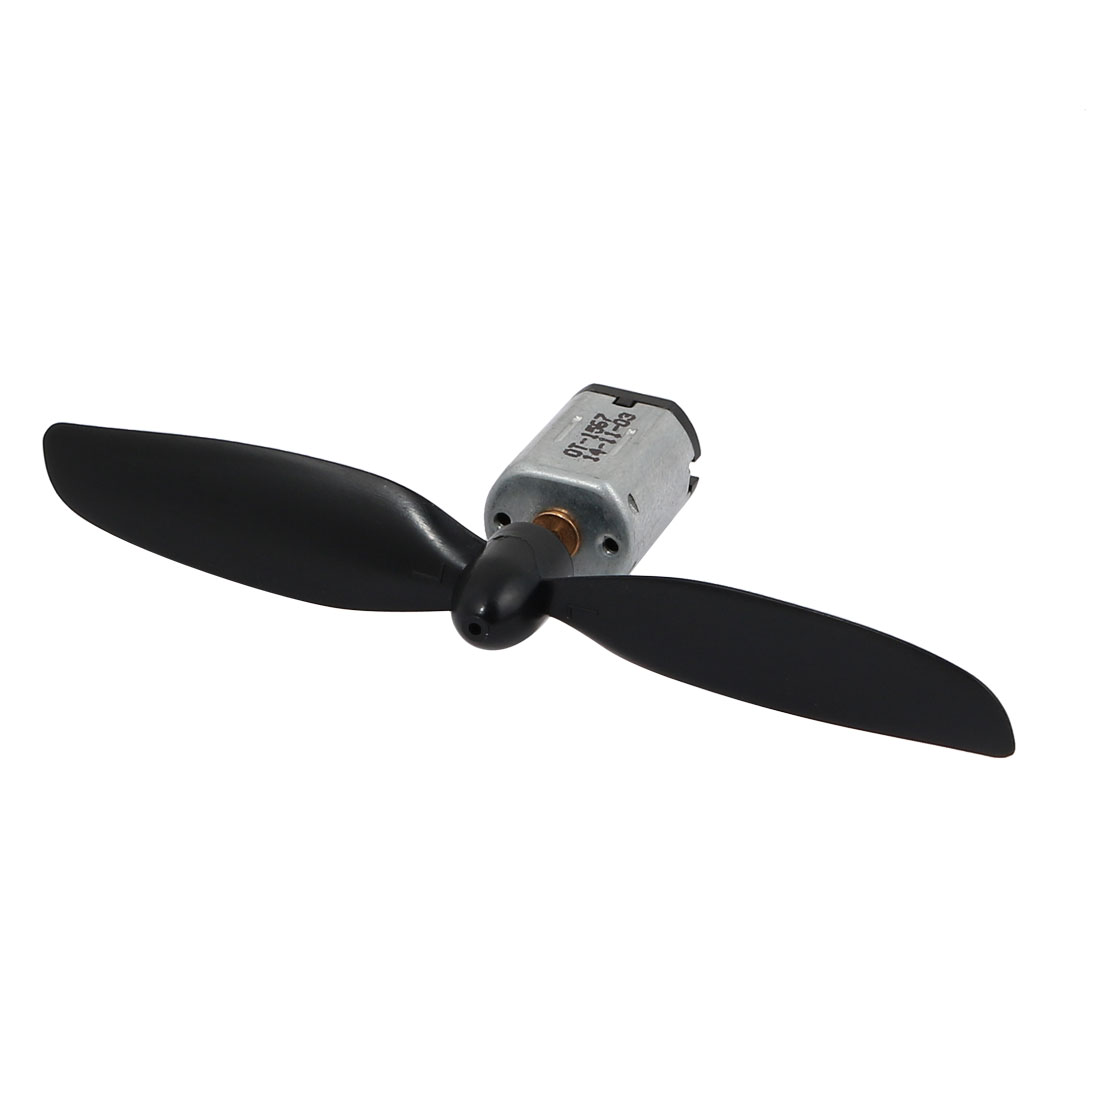 DC 3.7V 26000RPM N20 High Speed Strong Magnetic Motor w Helicopter CCW Propeller